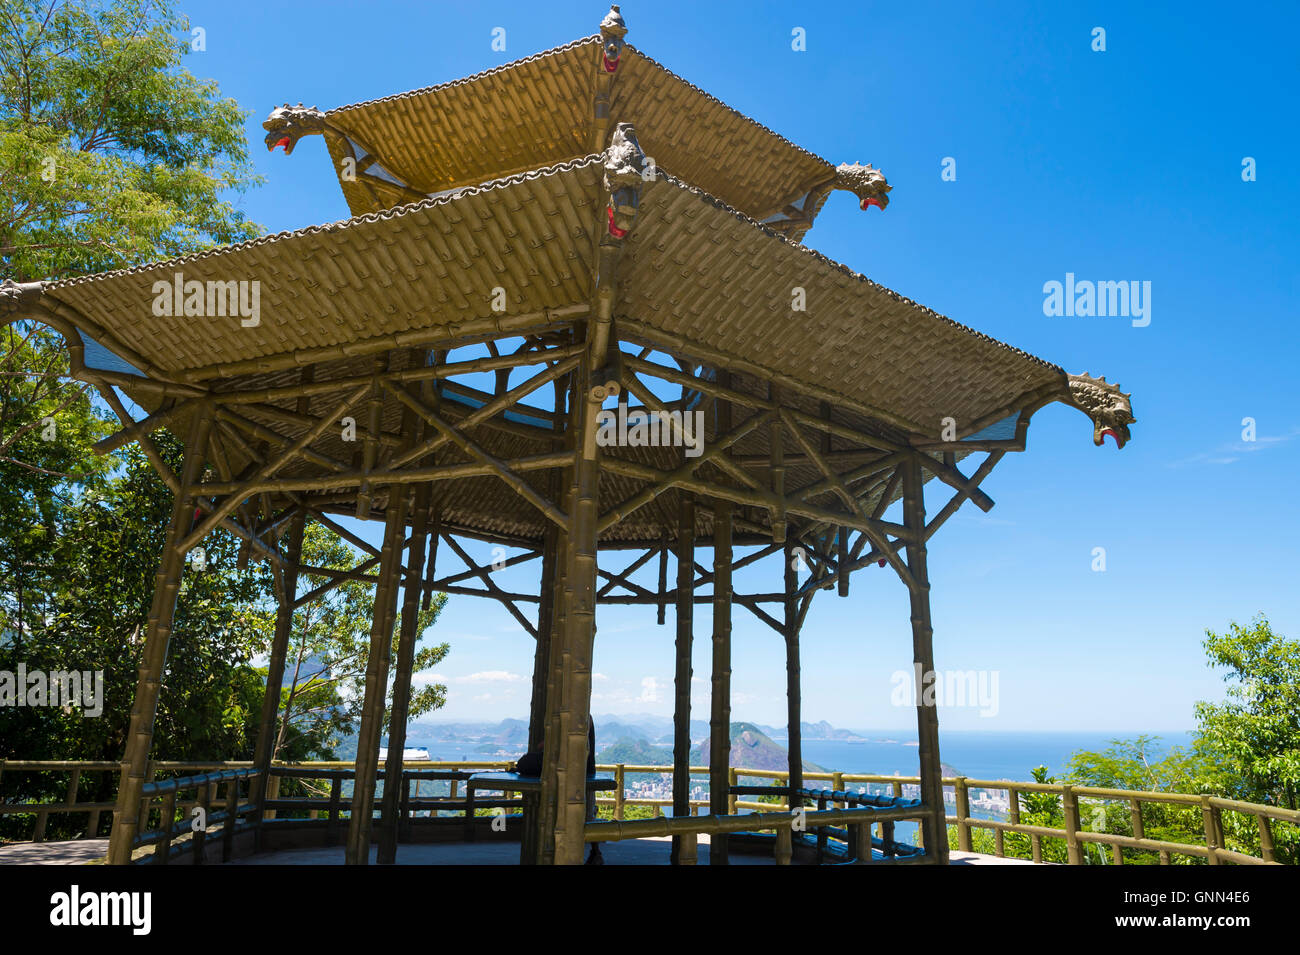 View through the traditional bamboo-inspired Chinese pagoda architecture of the Vista Chinesa scenic overlook in Stock Photo